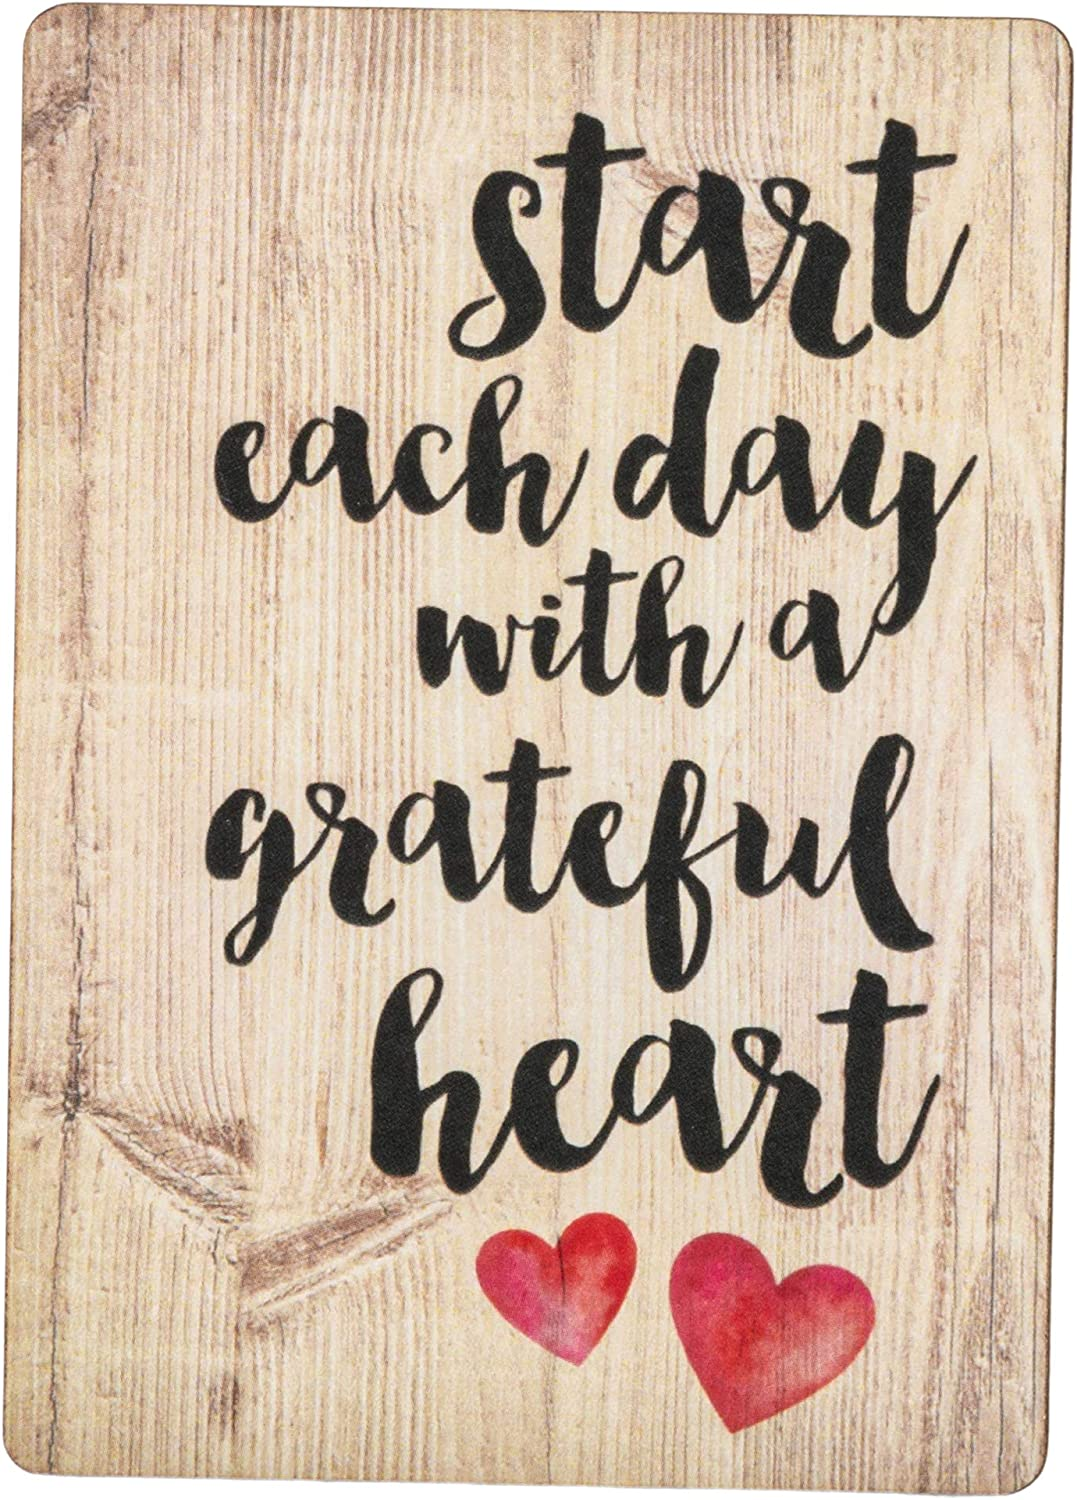 Start Each Day Script Red Heart Distressed Wood Look 3 x 4 Inch Wood Lithograph Magnet